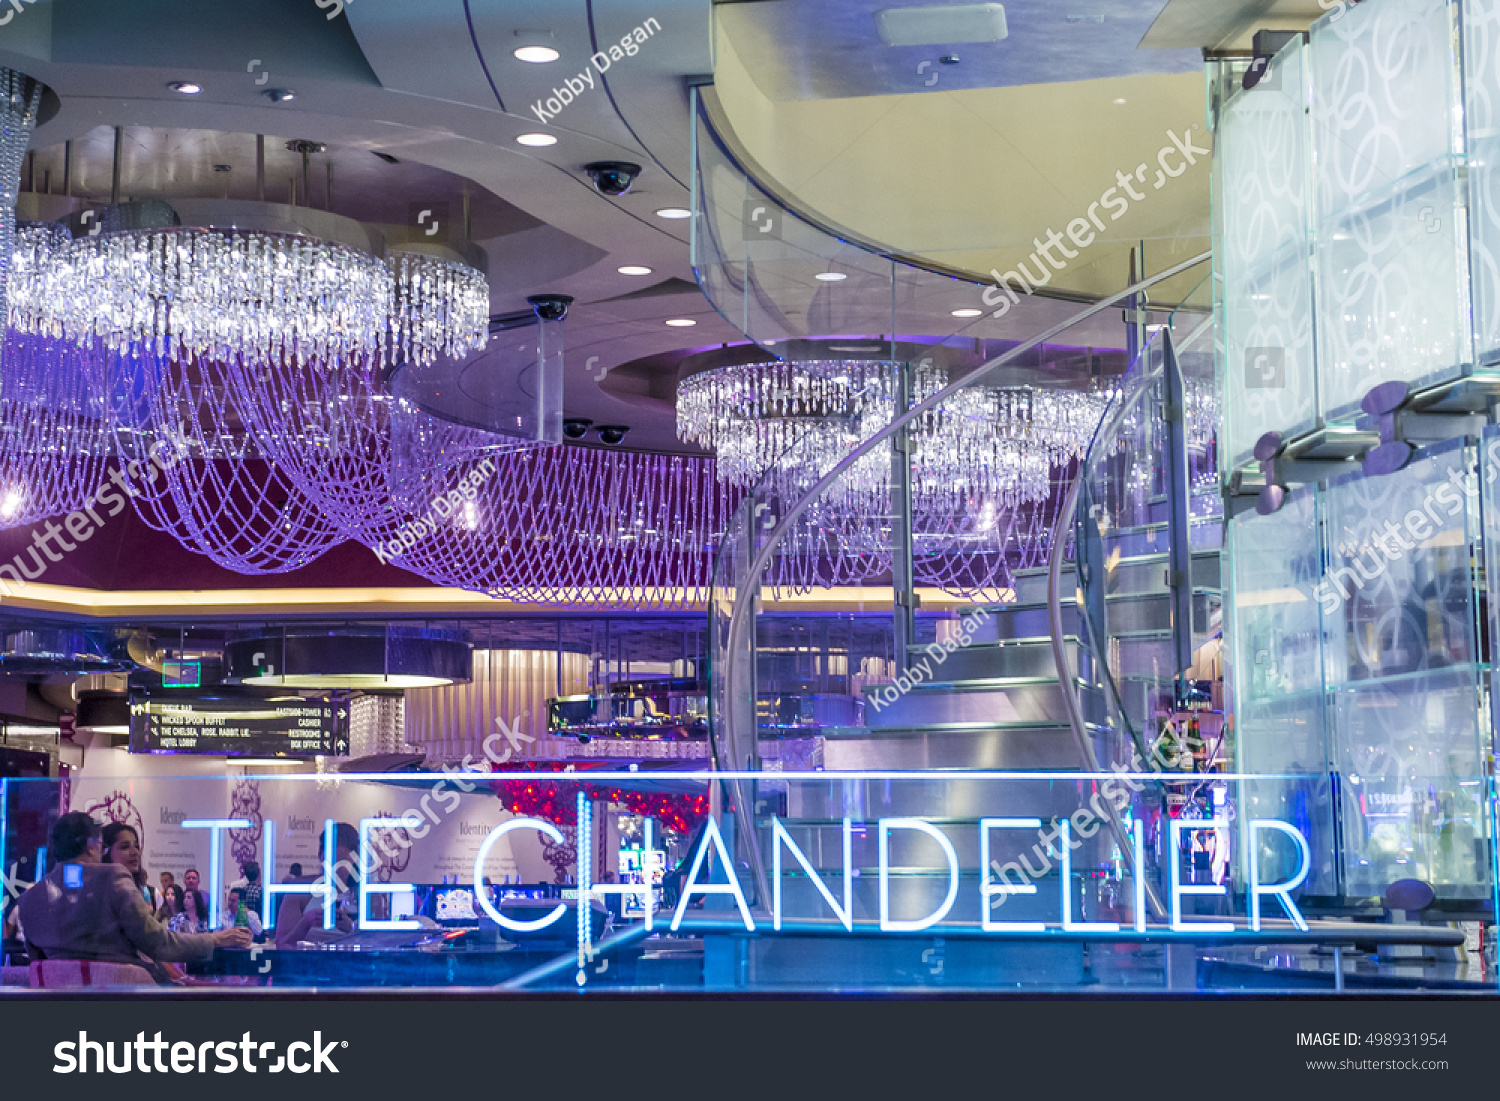 Las vegas oct 05 chandelier bar stock photo edit now shutterstock las vegas oct 05 the chandelier bar at the cosmopolitan hotel casino in aloadofball Gallery